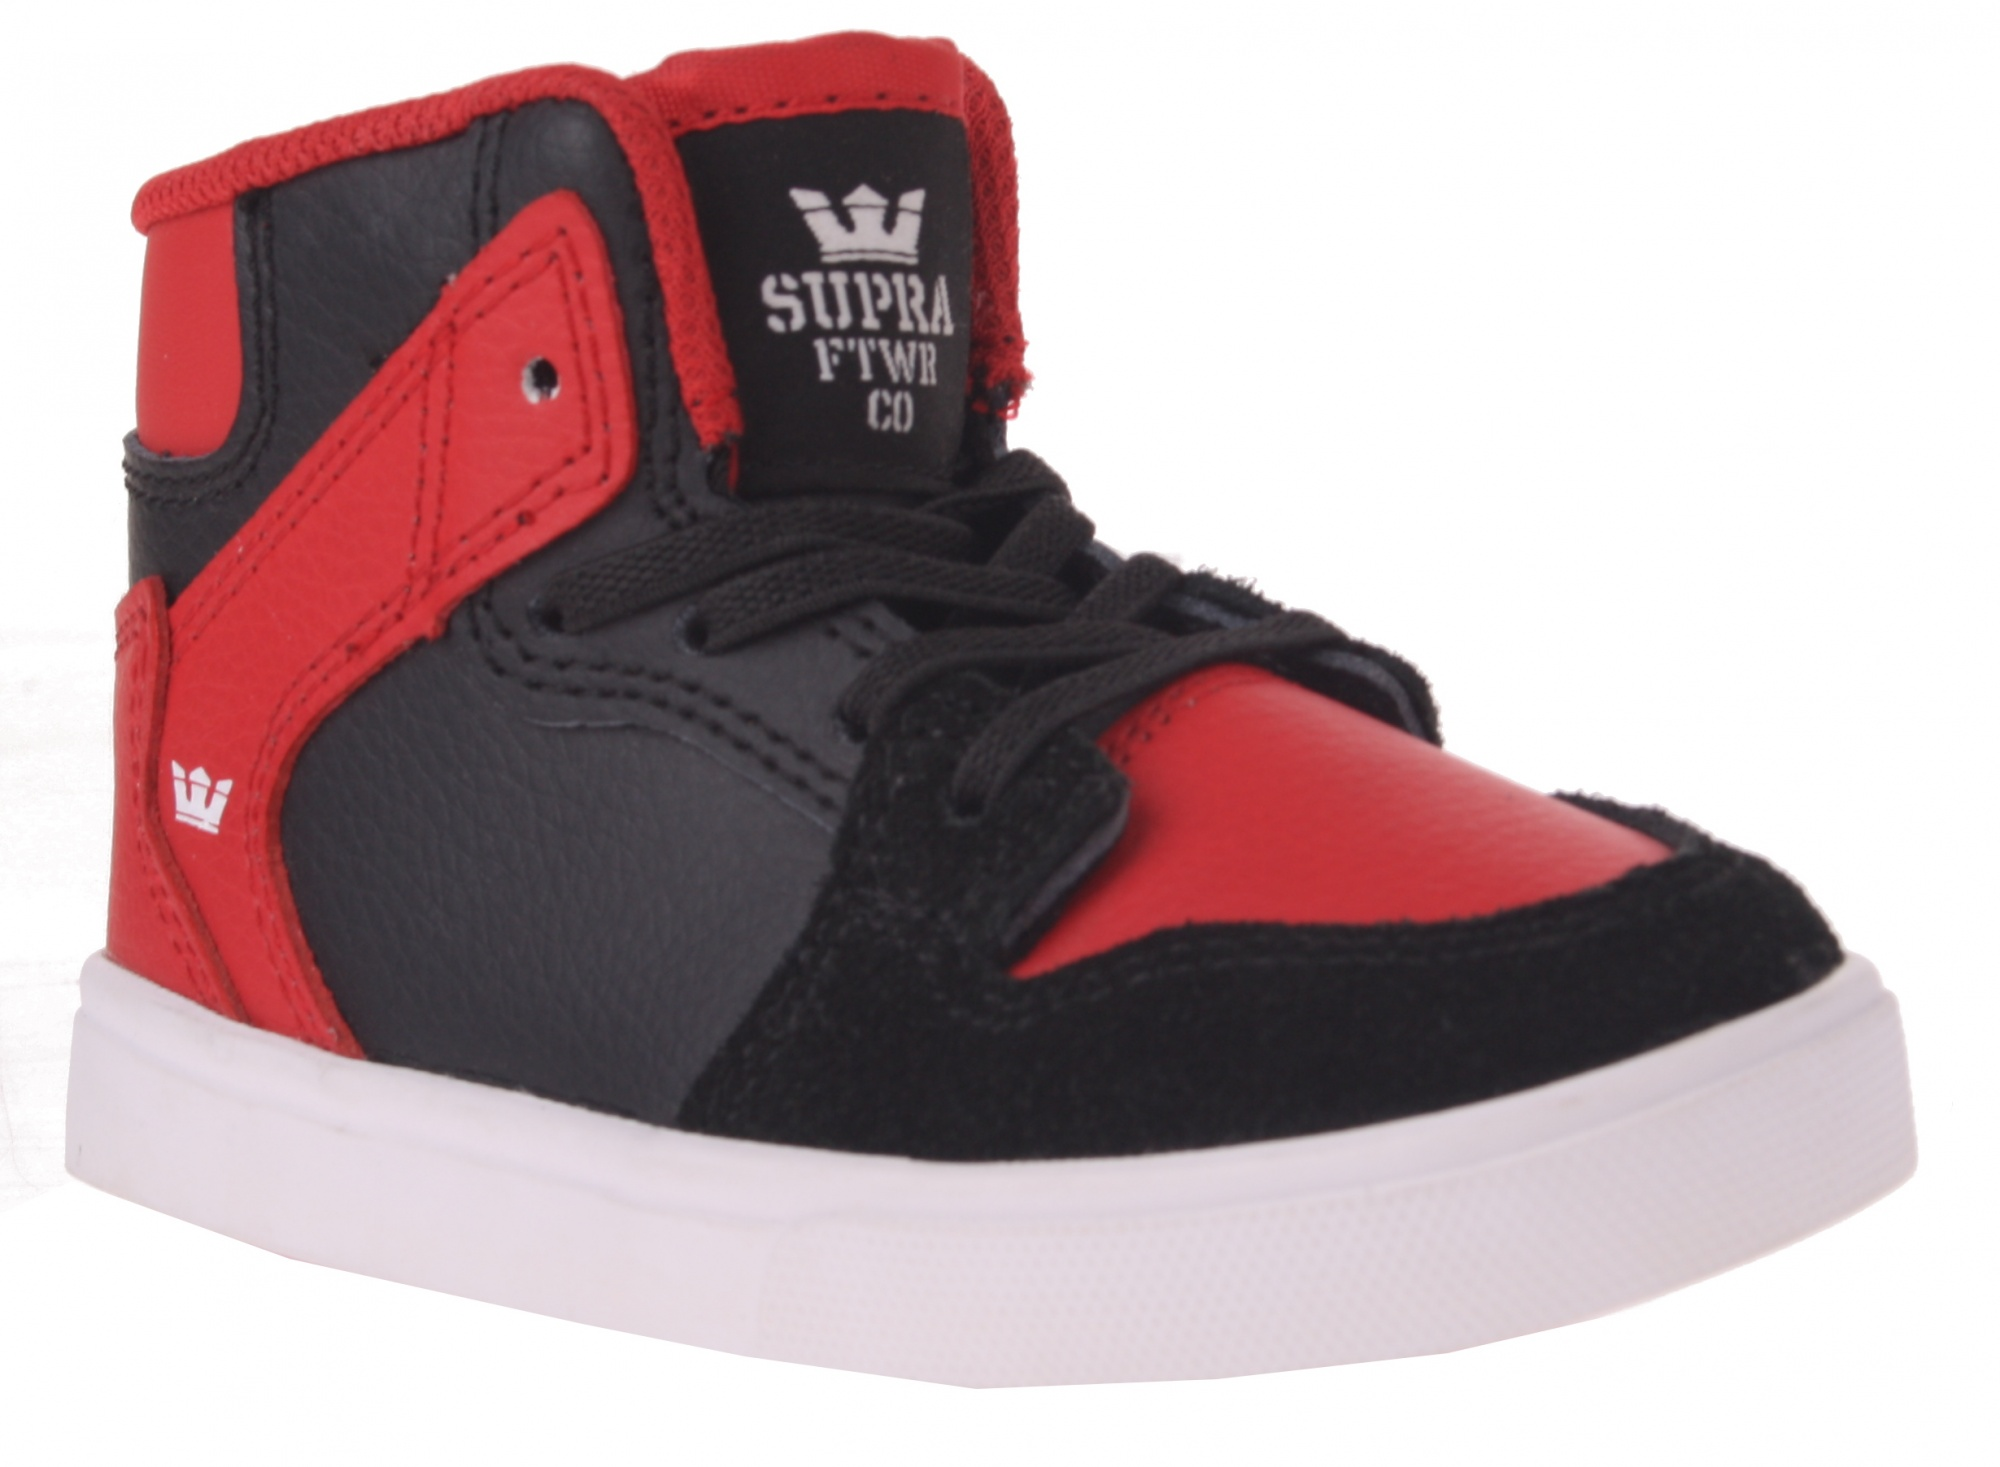 55af109eff59 Supra High Sneakers Vaider Junior Red   Black - Internet-Sport Casuals